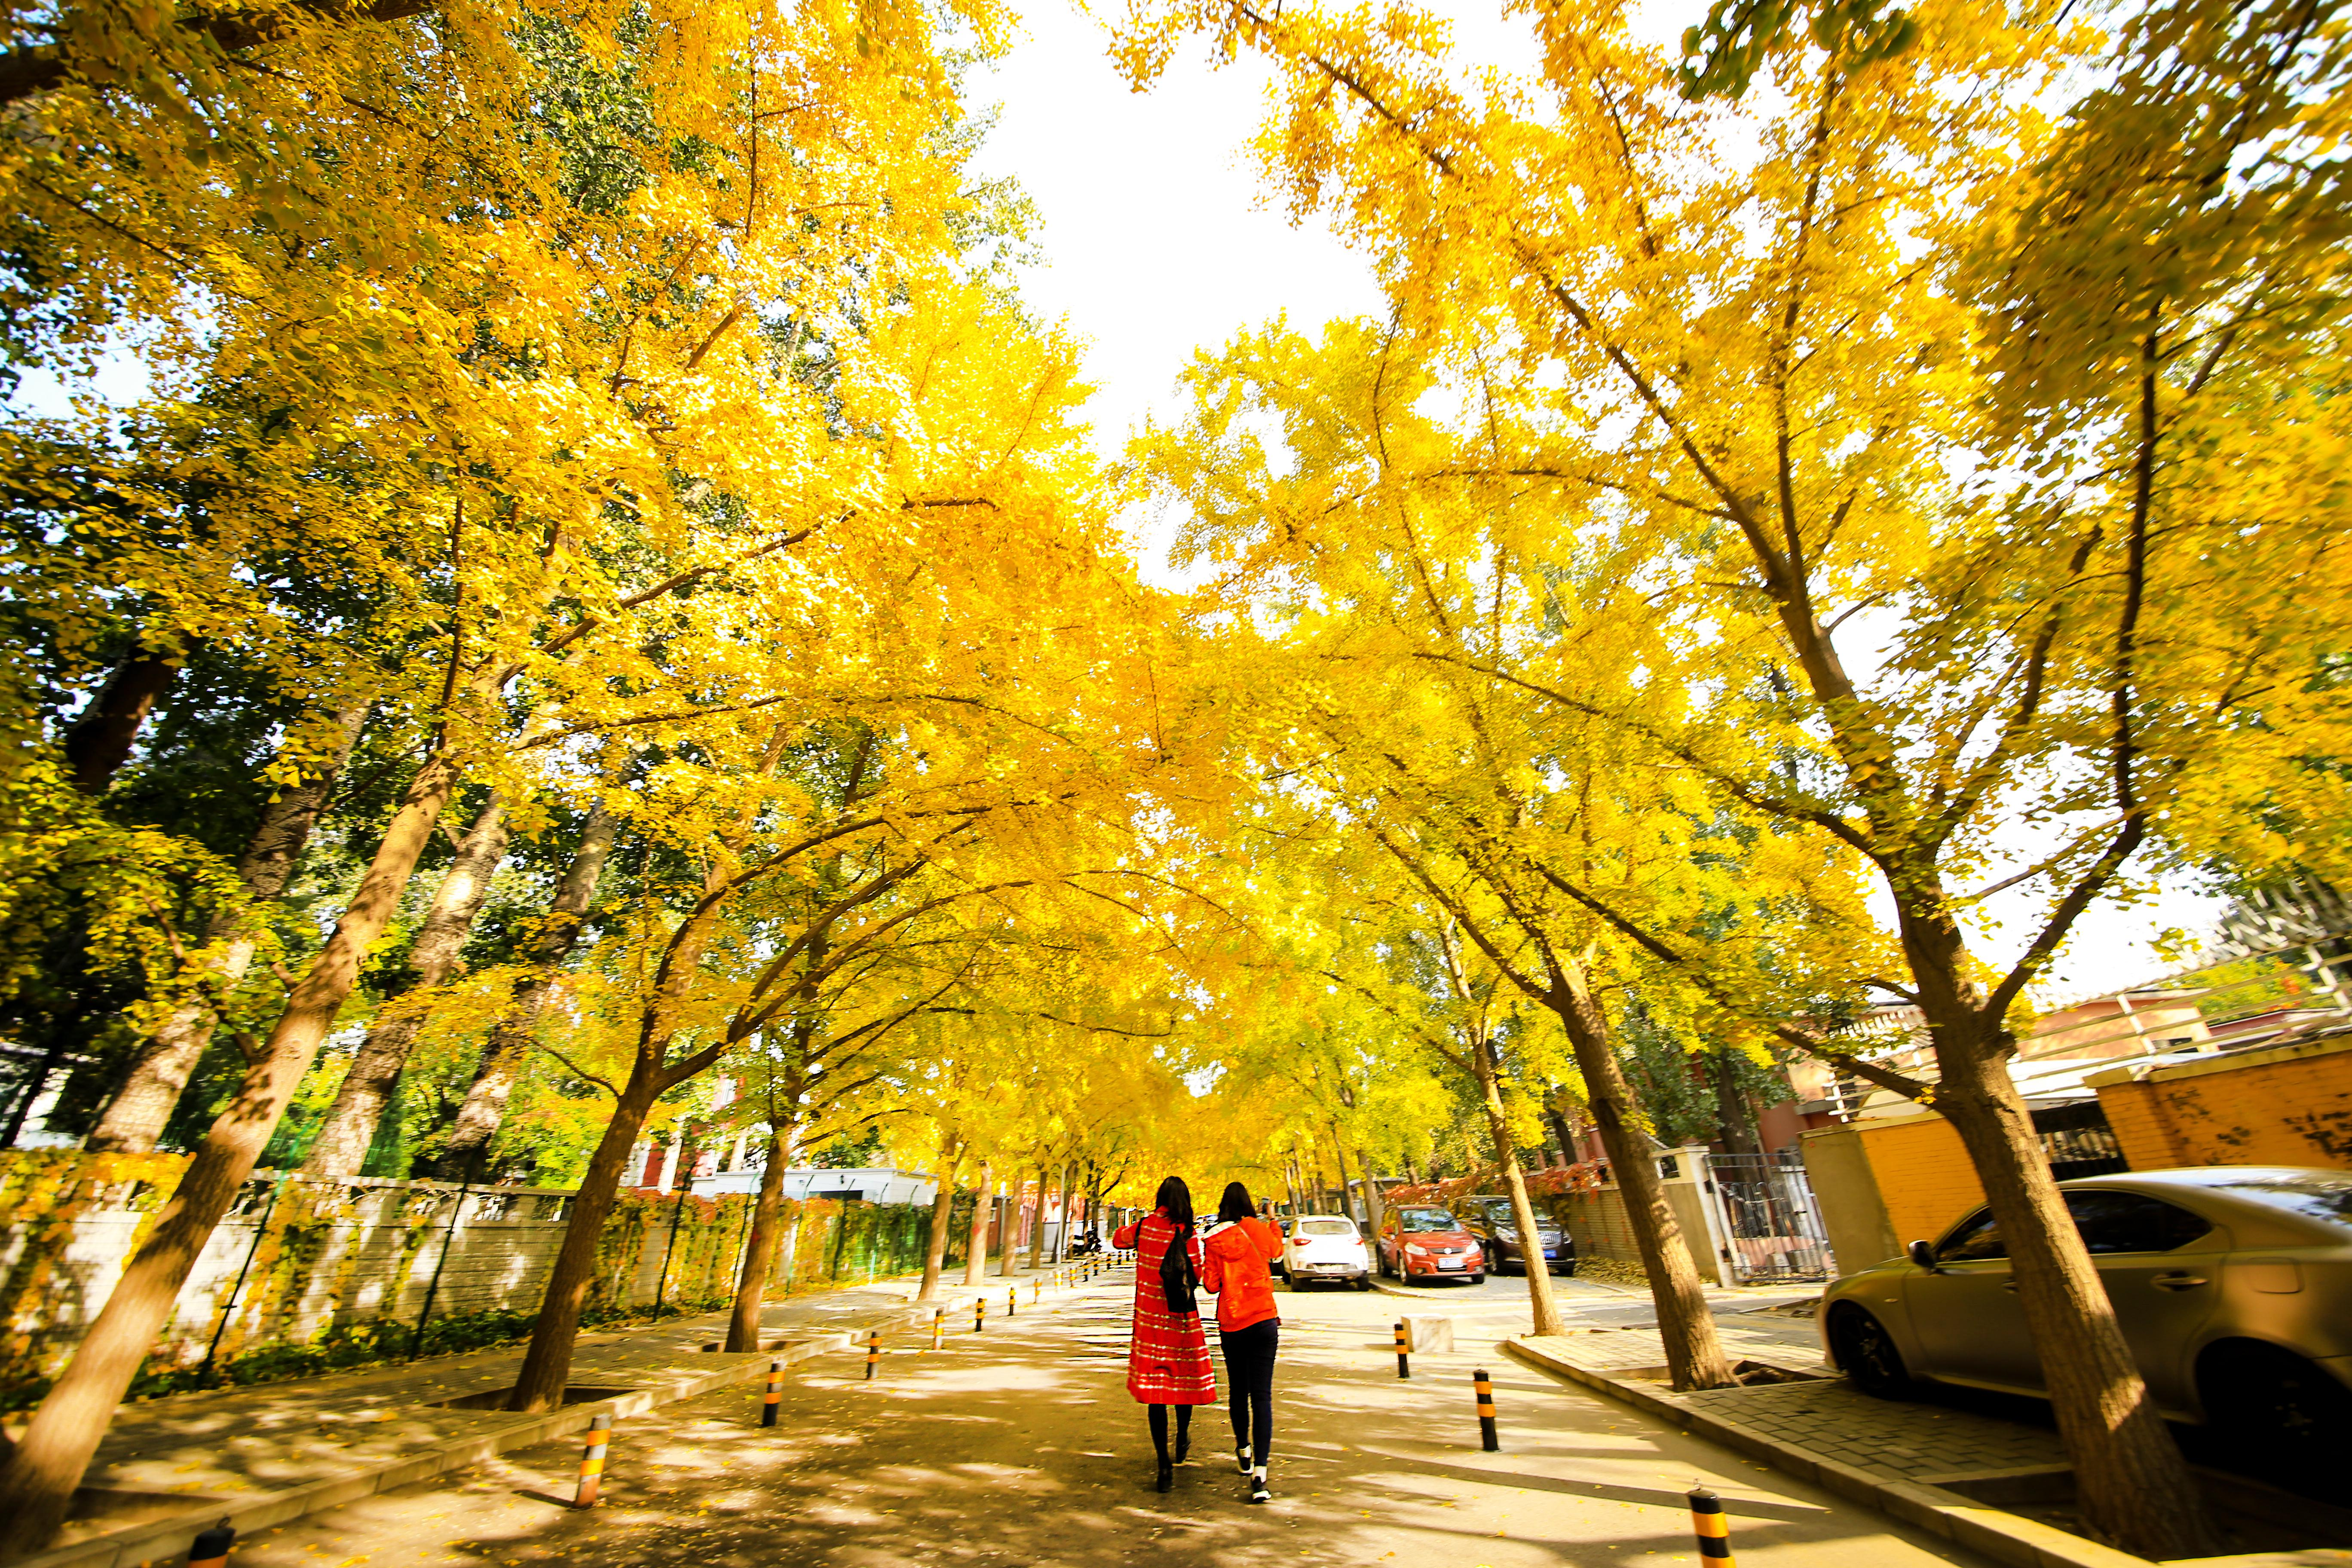 A street golden with gingko trees.